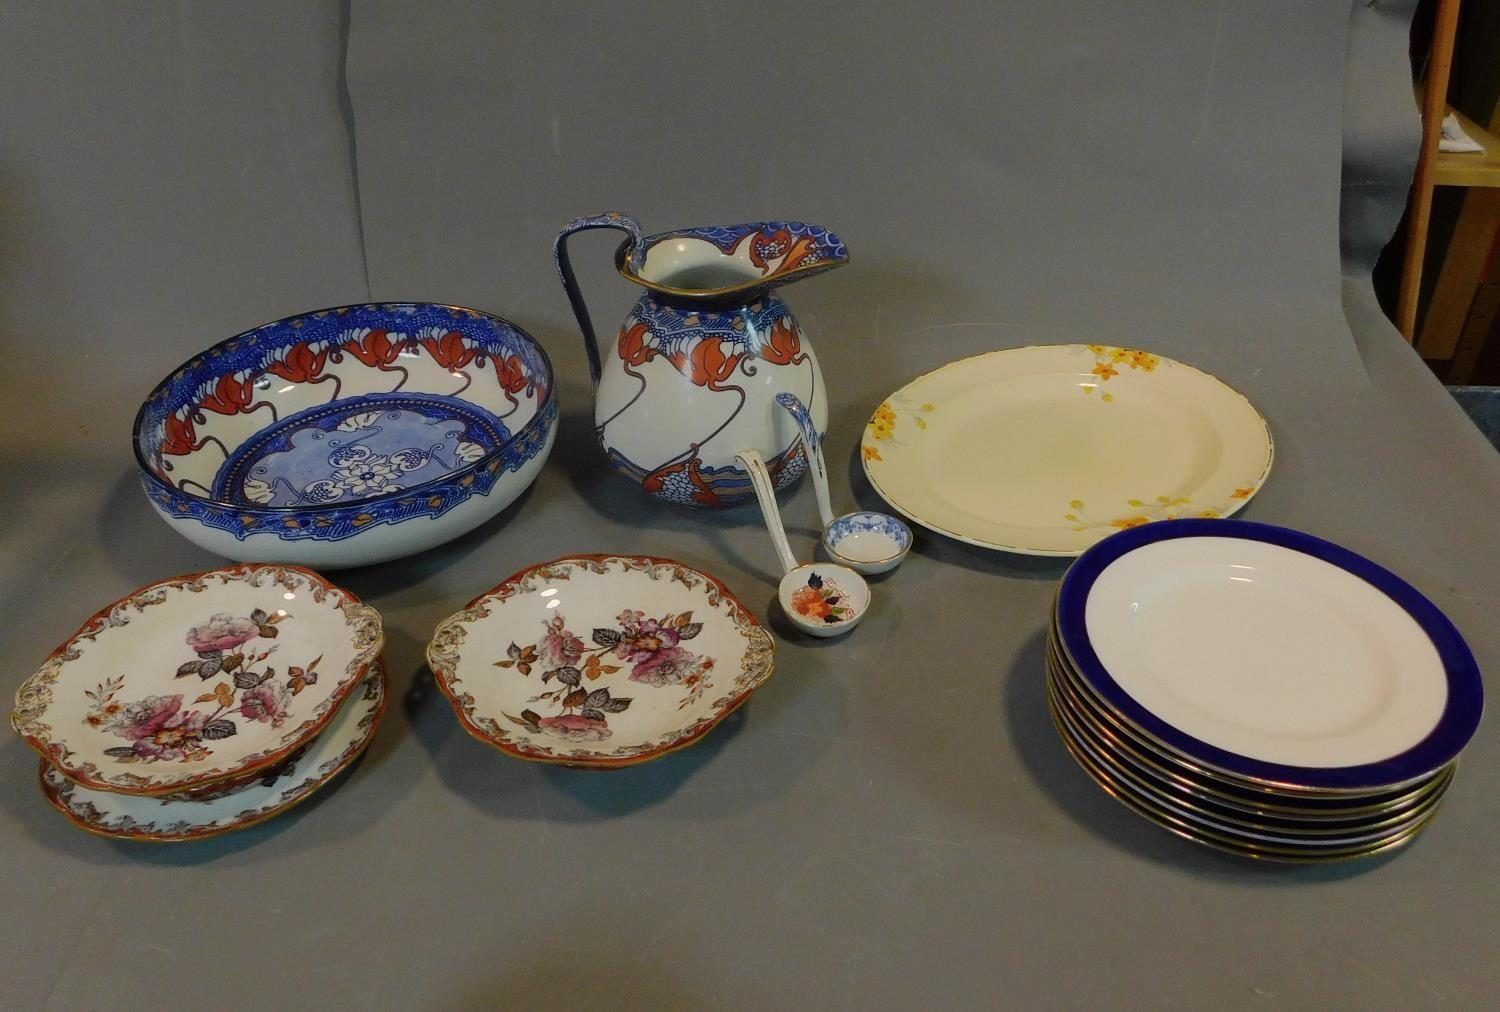 A late 19th century Art Nouveau jug and bowl and a collection of Victorian and later plates.